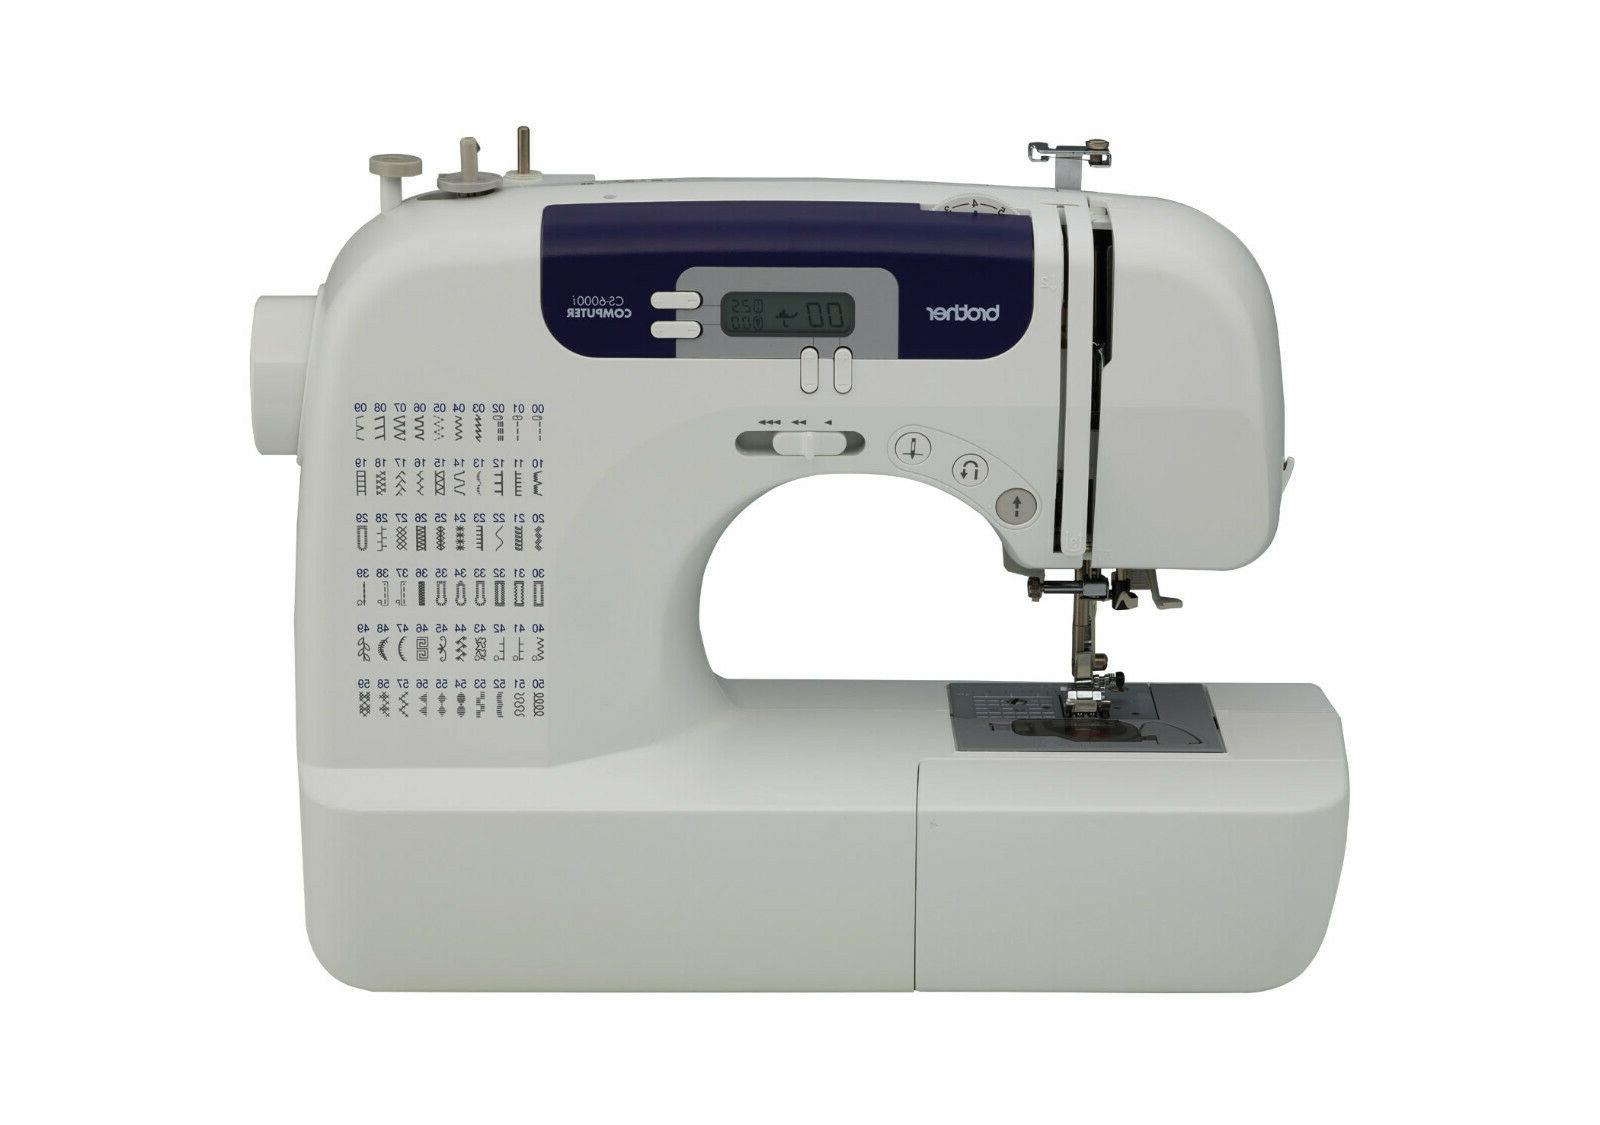 Brother CS6000i Feature-Rich Sewing Table